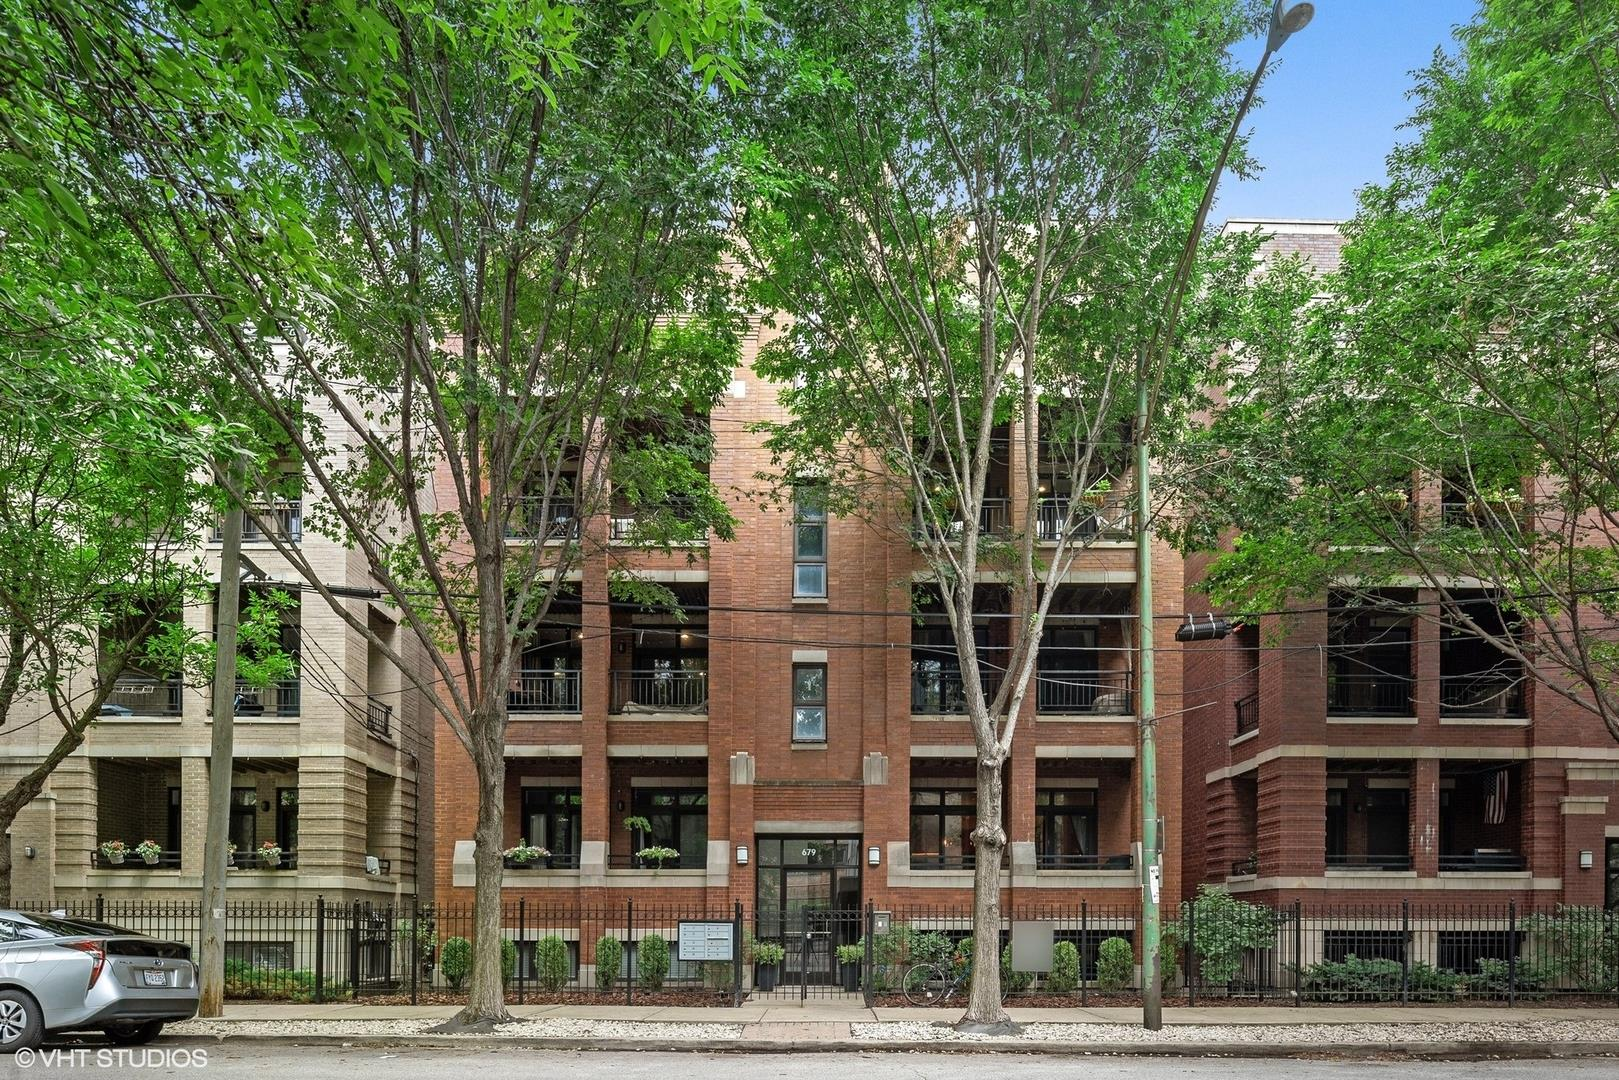 679 N Peoria Street #1S, Chicago, IL 60642 - #: 10877744